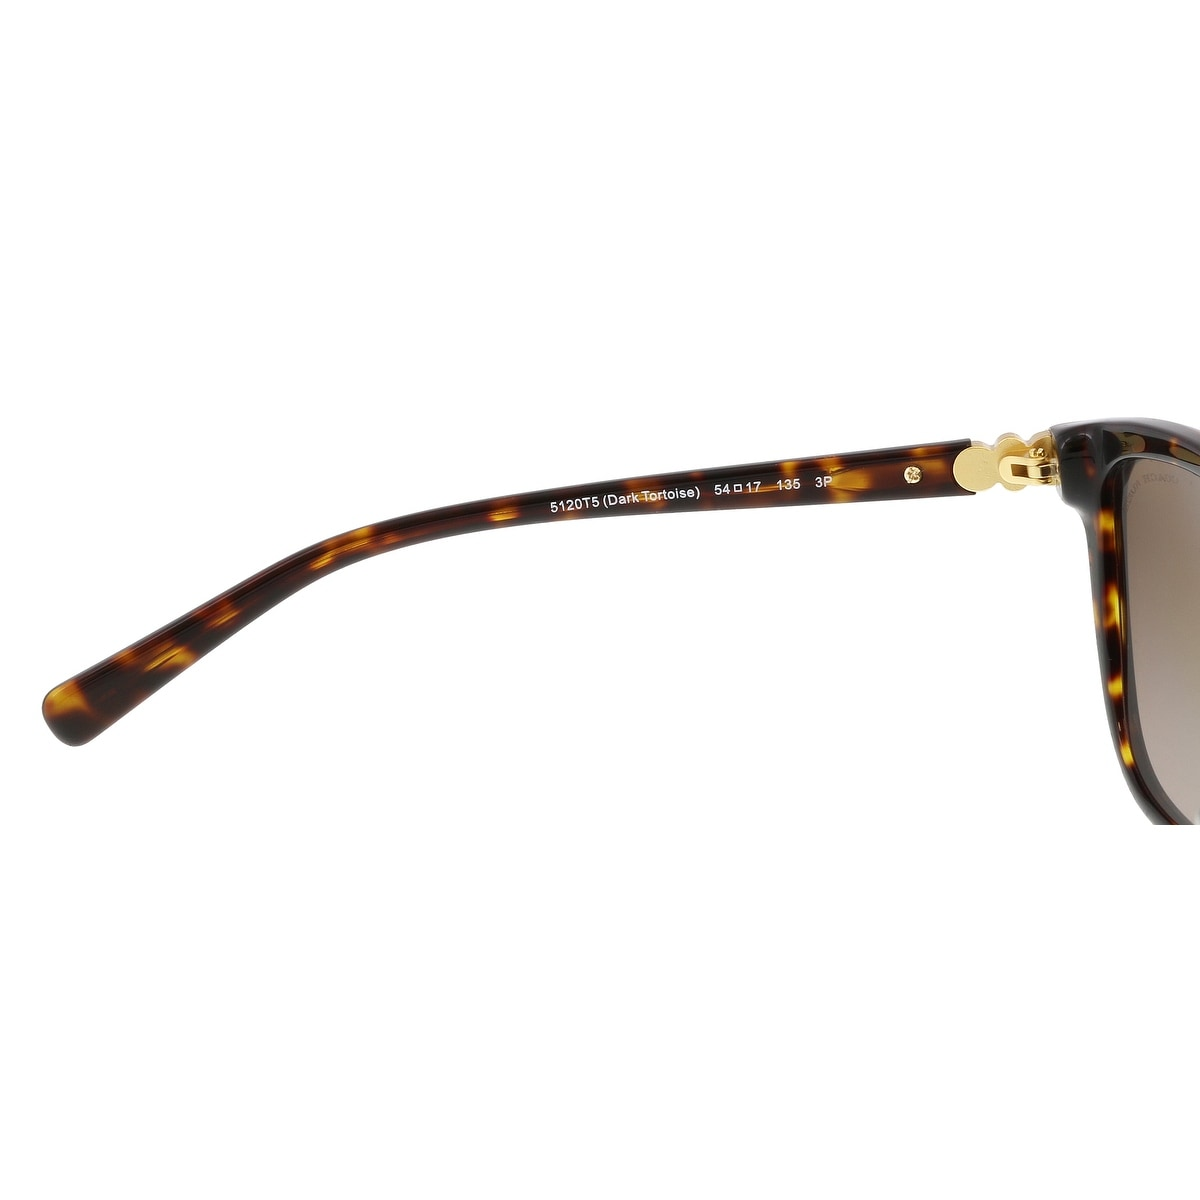 542fad406e ... czech shop coach hc8187b 5120t5 dark tortoise cateye sunglasses 54 17  135 free shipping today overstock